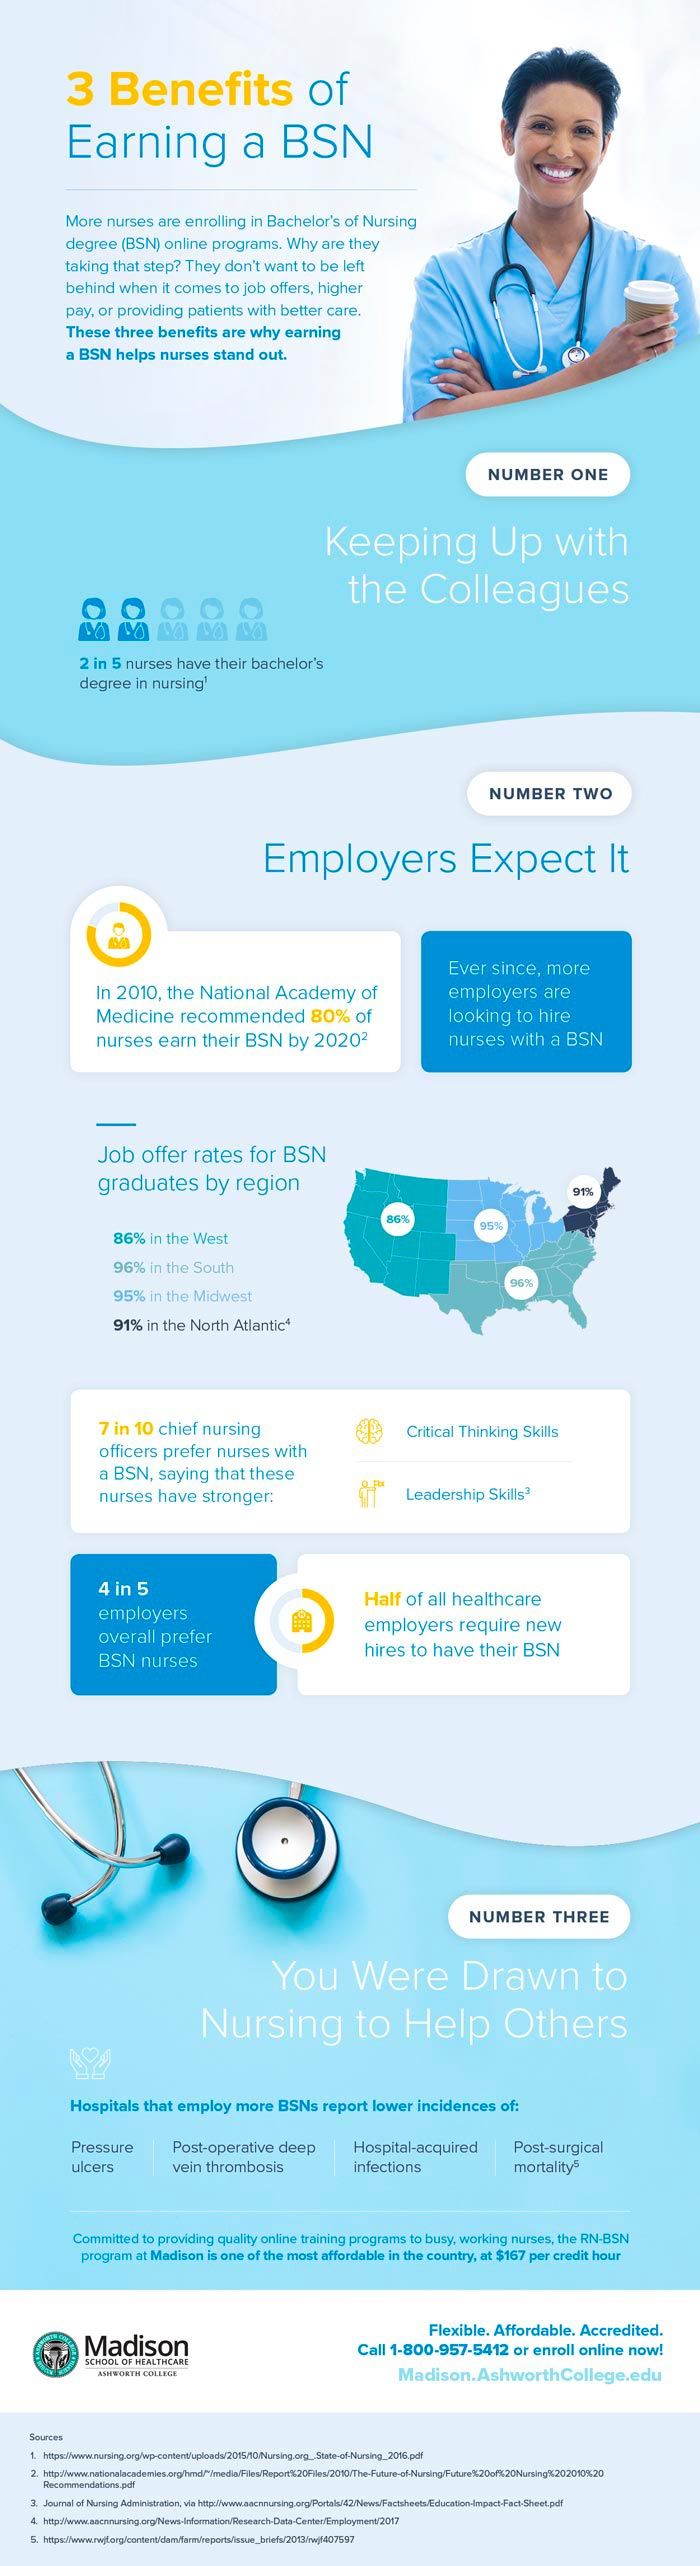 Infographic: 3 Bona Fide Benefits of Earning a BSN